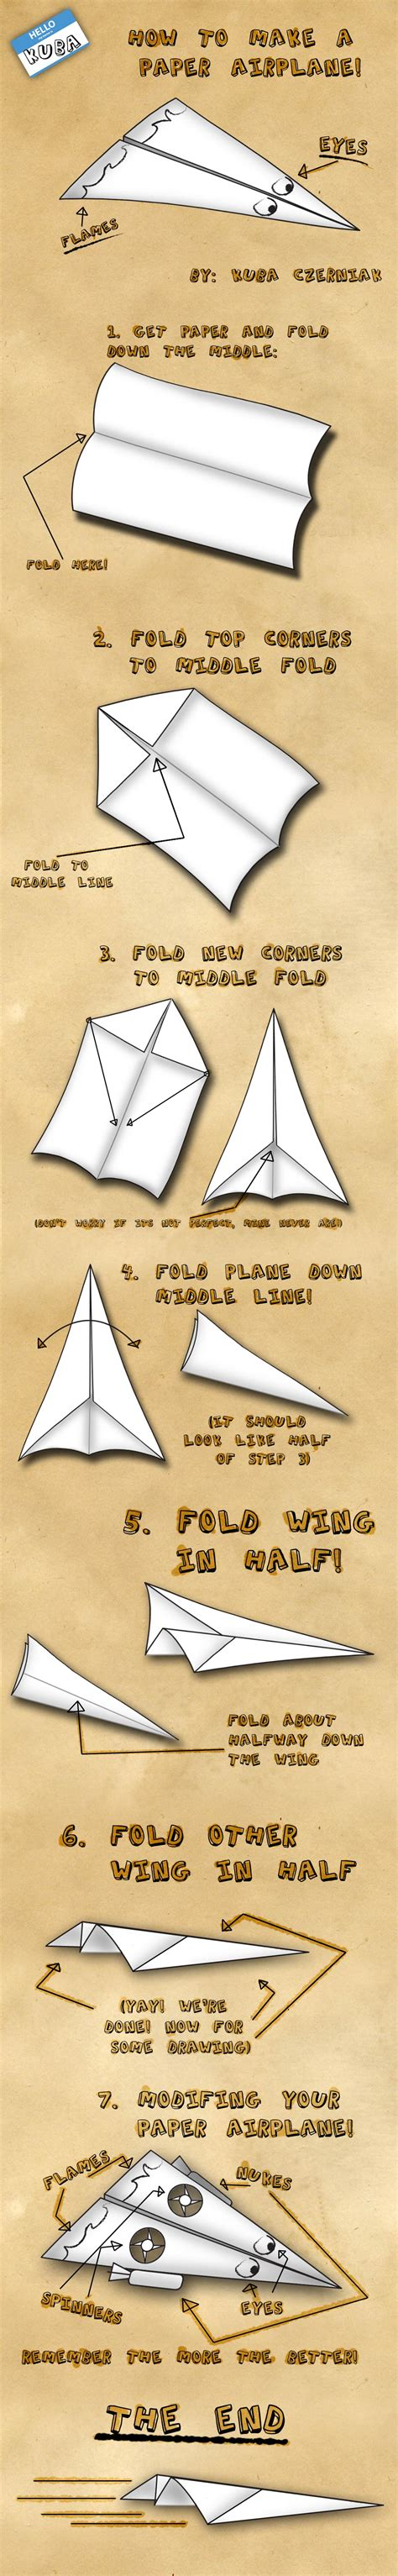 How To Make A Paper 16 - how to make a paper airplane by kubah on deviantart